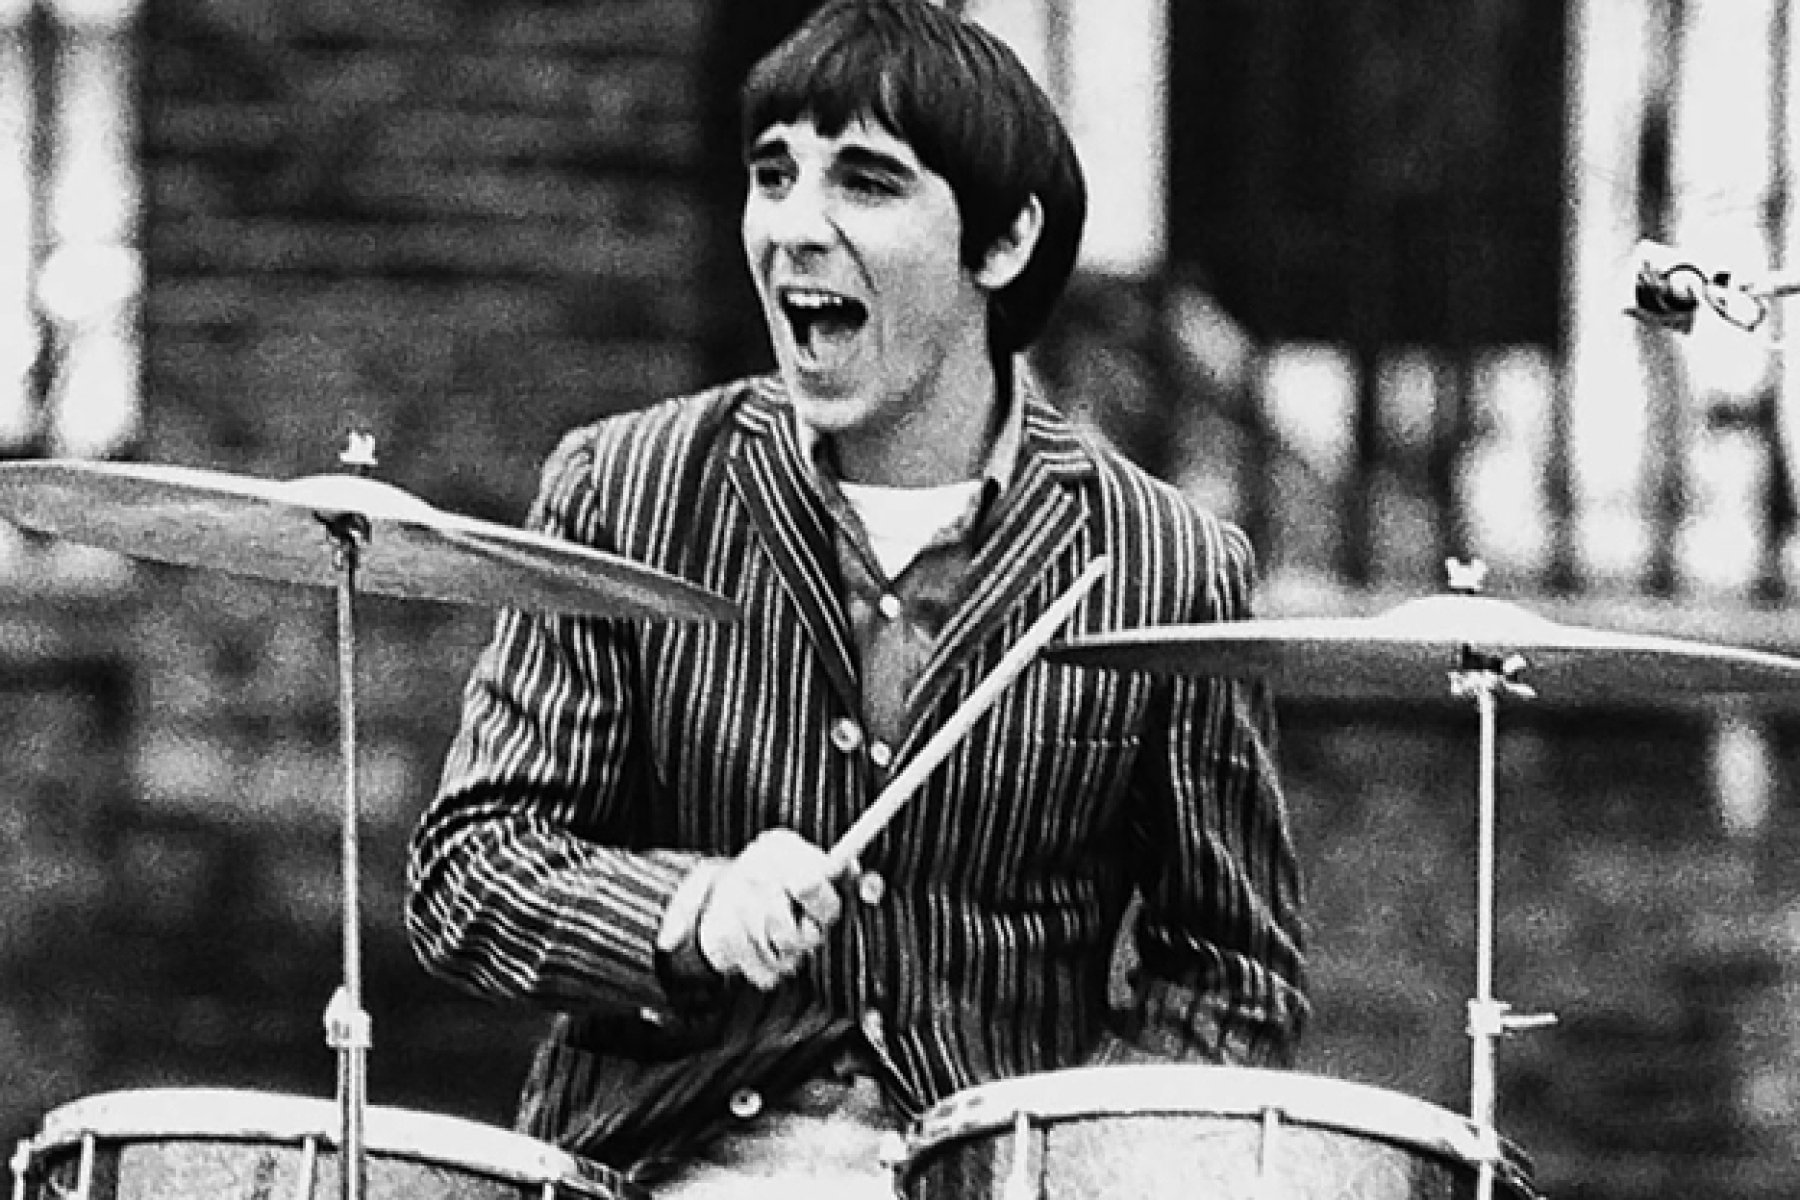 rs 9735 20130228 keith moon drums 624x420 1362092589 20 Things You Never Knew About The Who